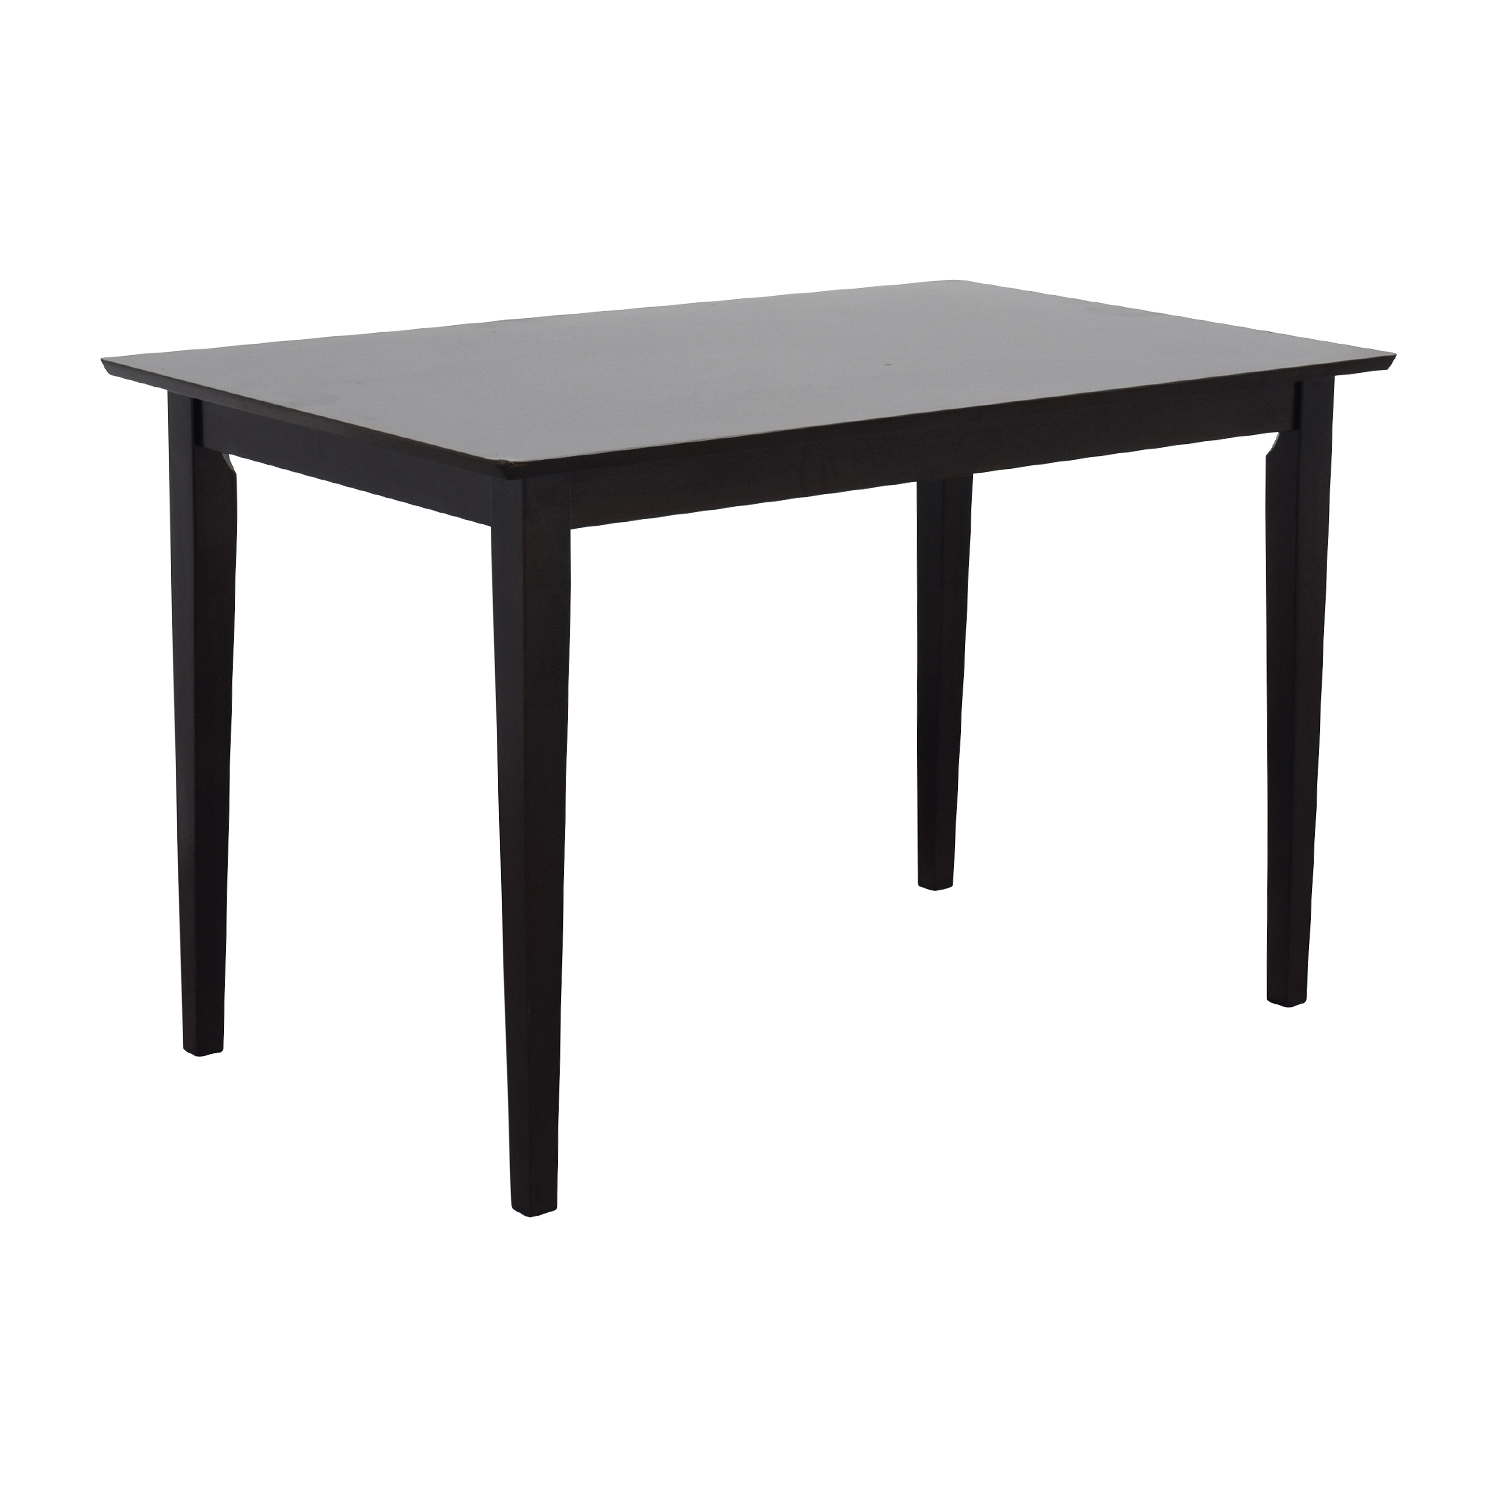 Coaster Home Furnishings Coaster Home Hyde Rectangular Casual Dining Leg Table on sale